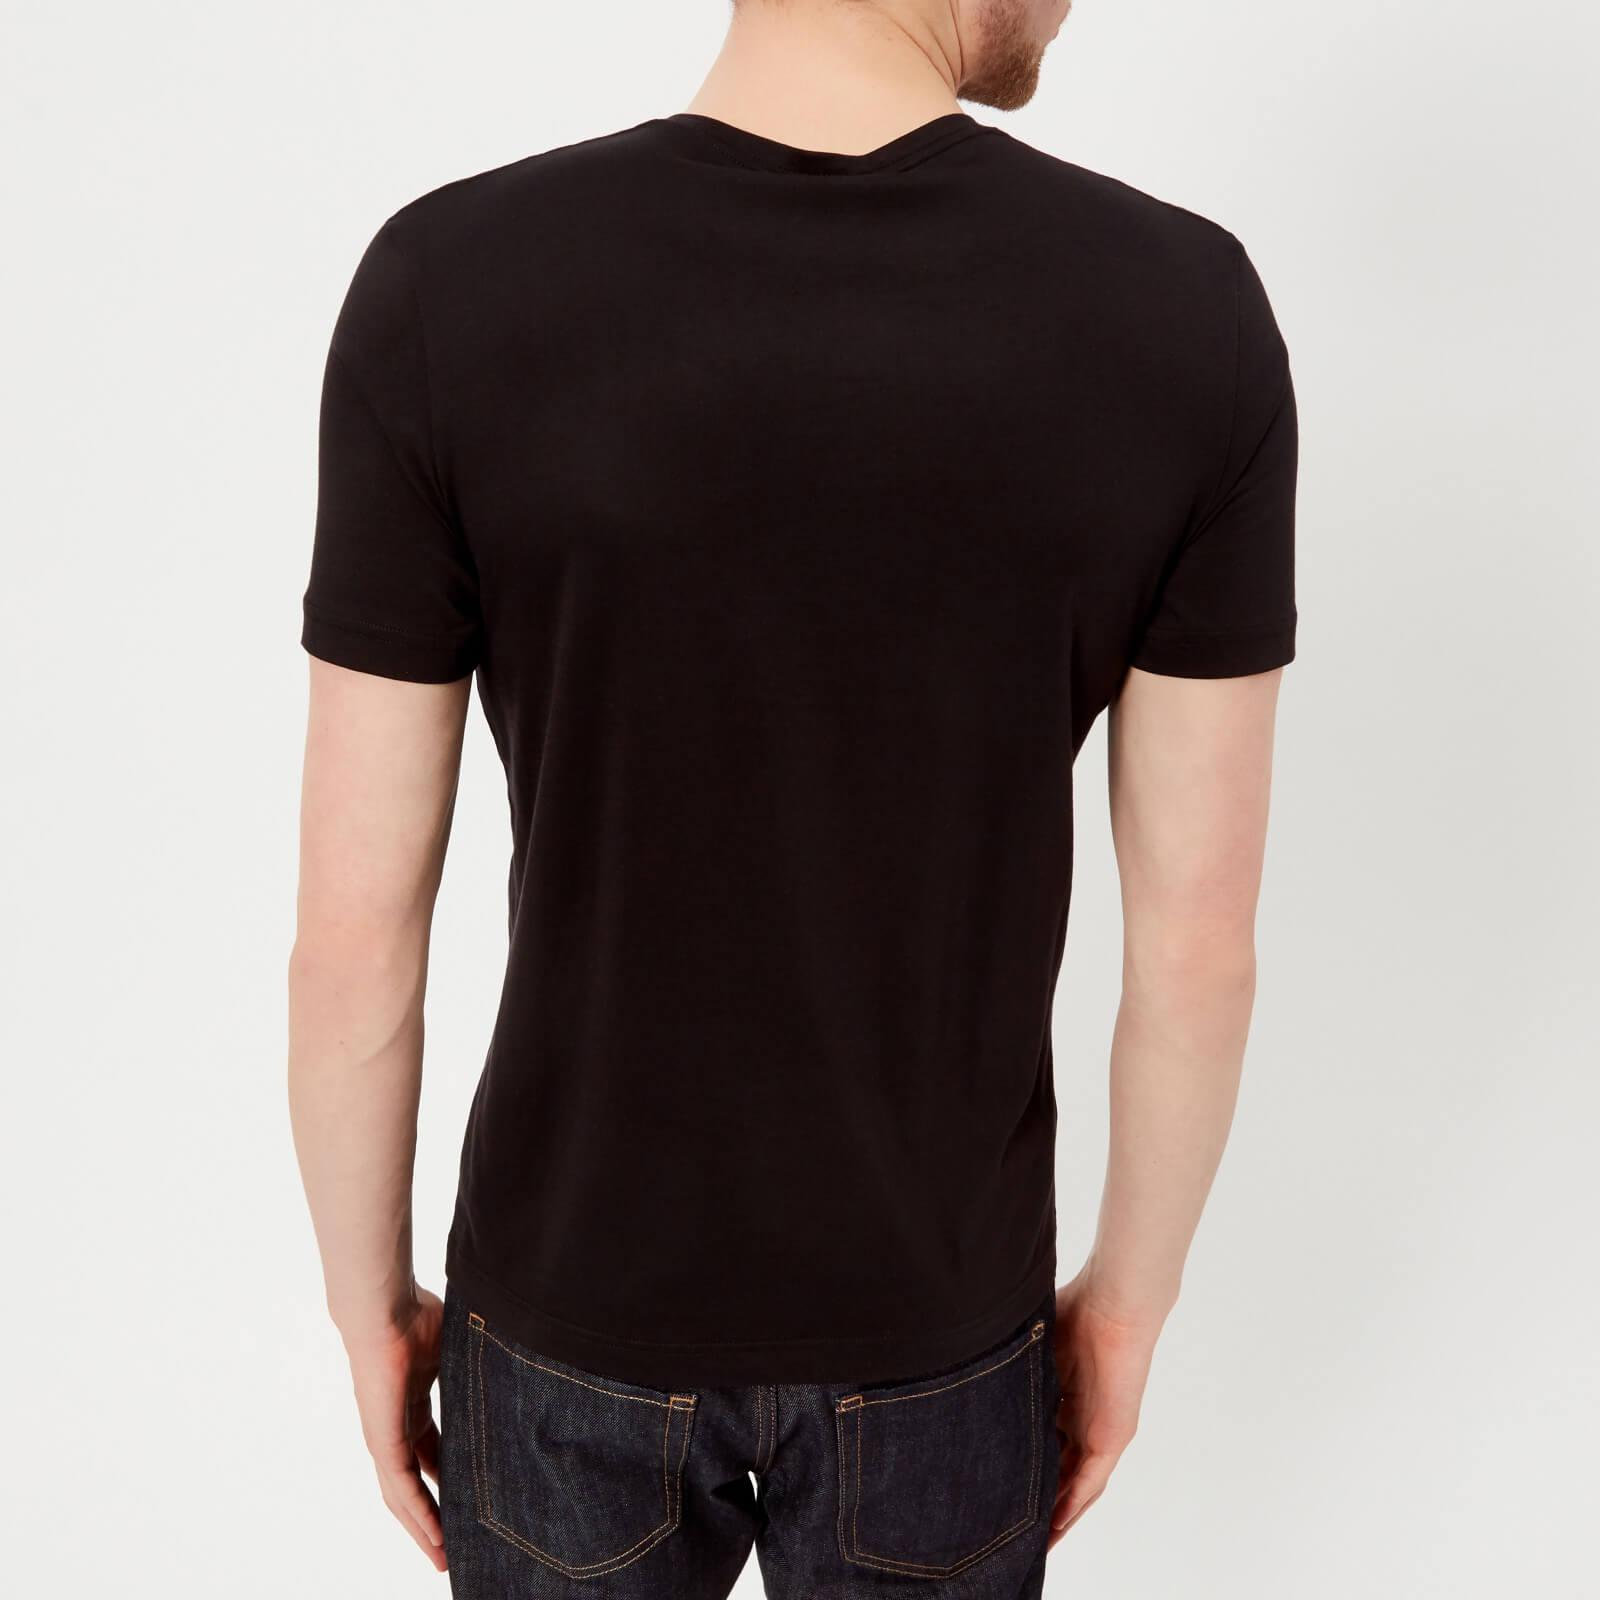 e2eb66be9 BOSS Green Tallone T-shirt in Black for Men - Lyst